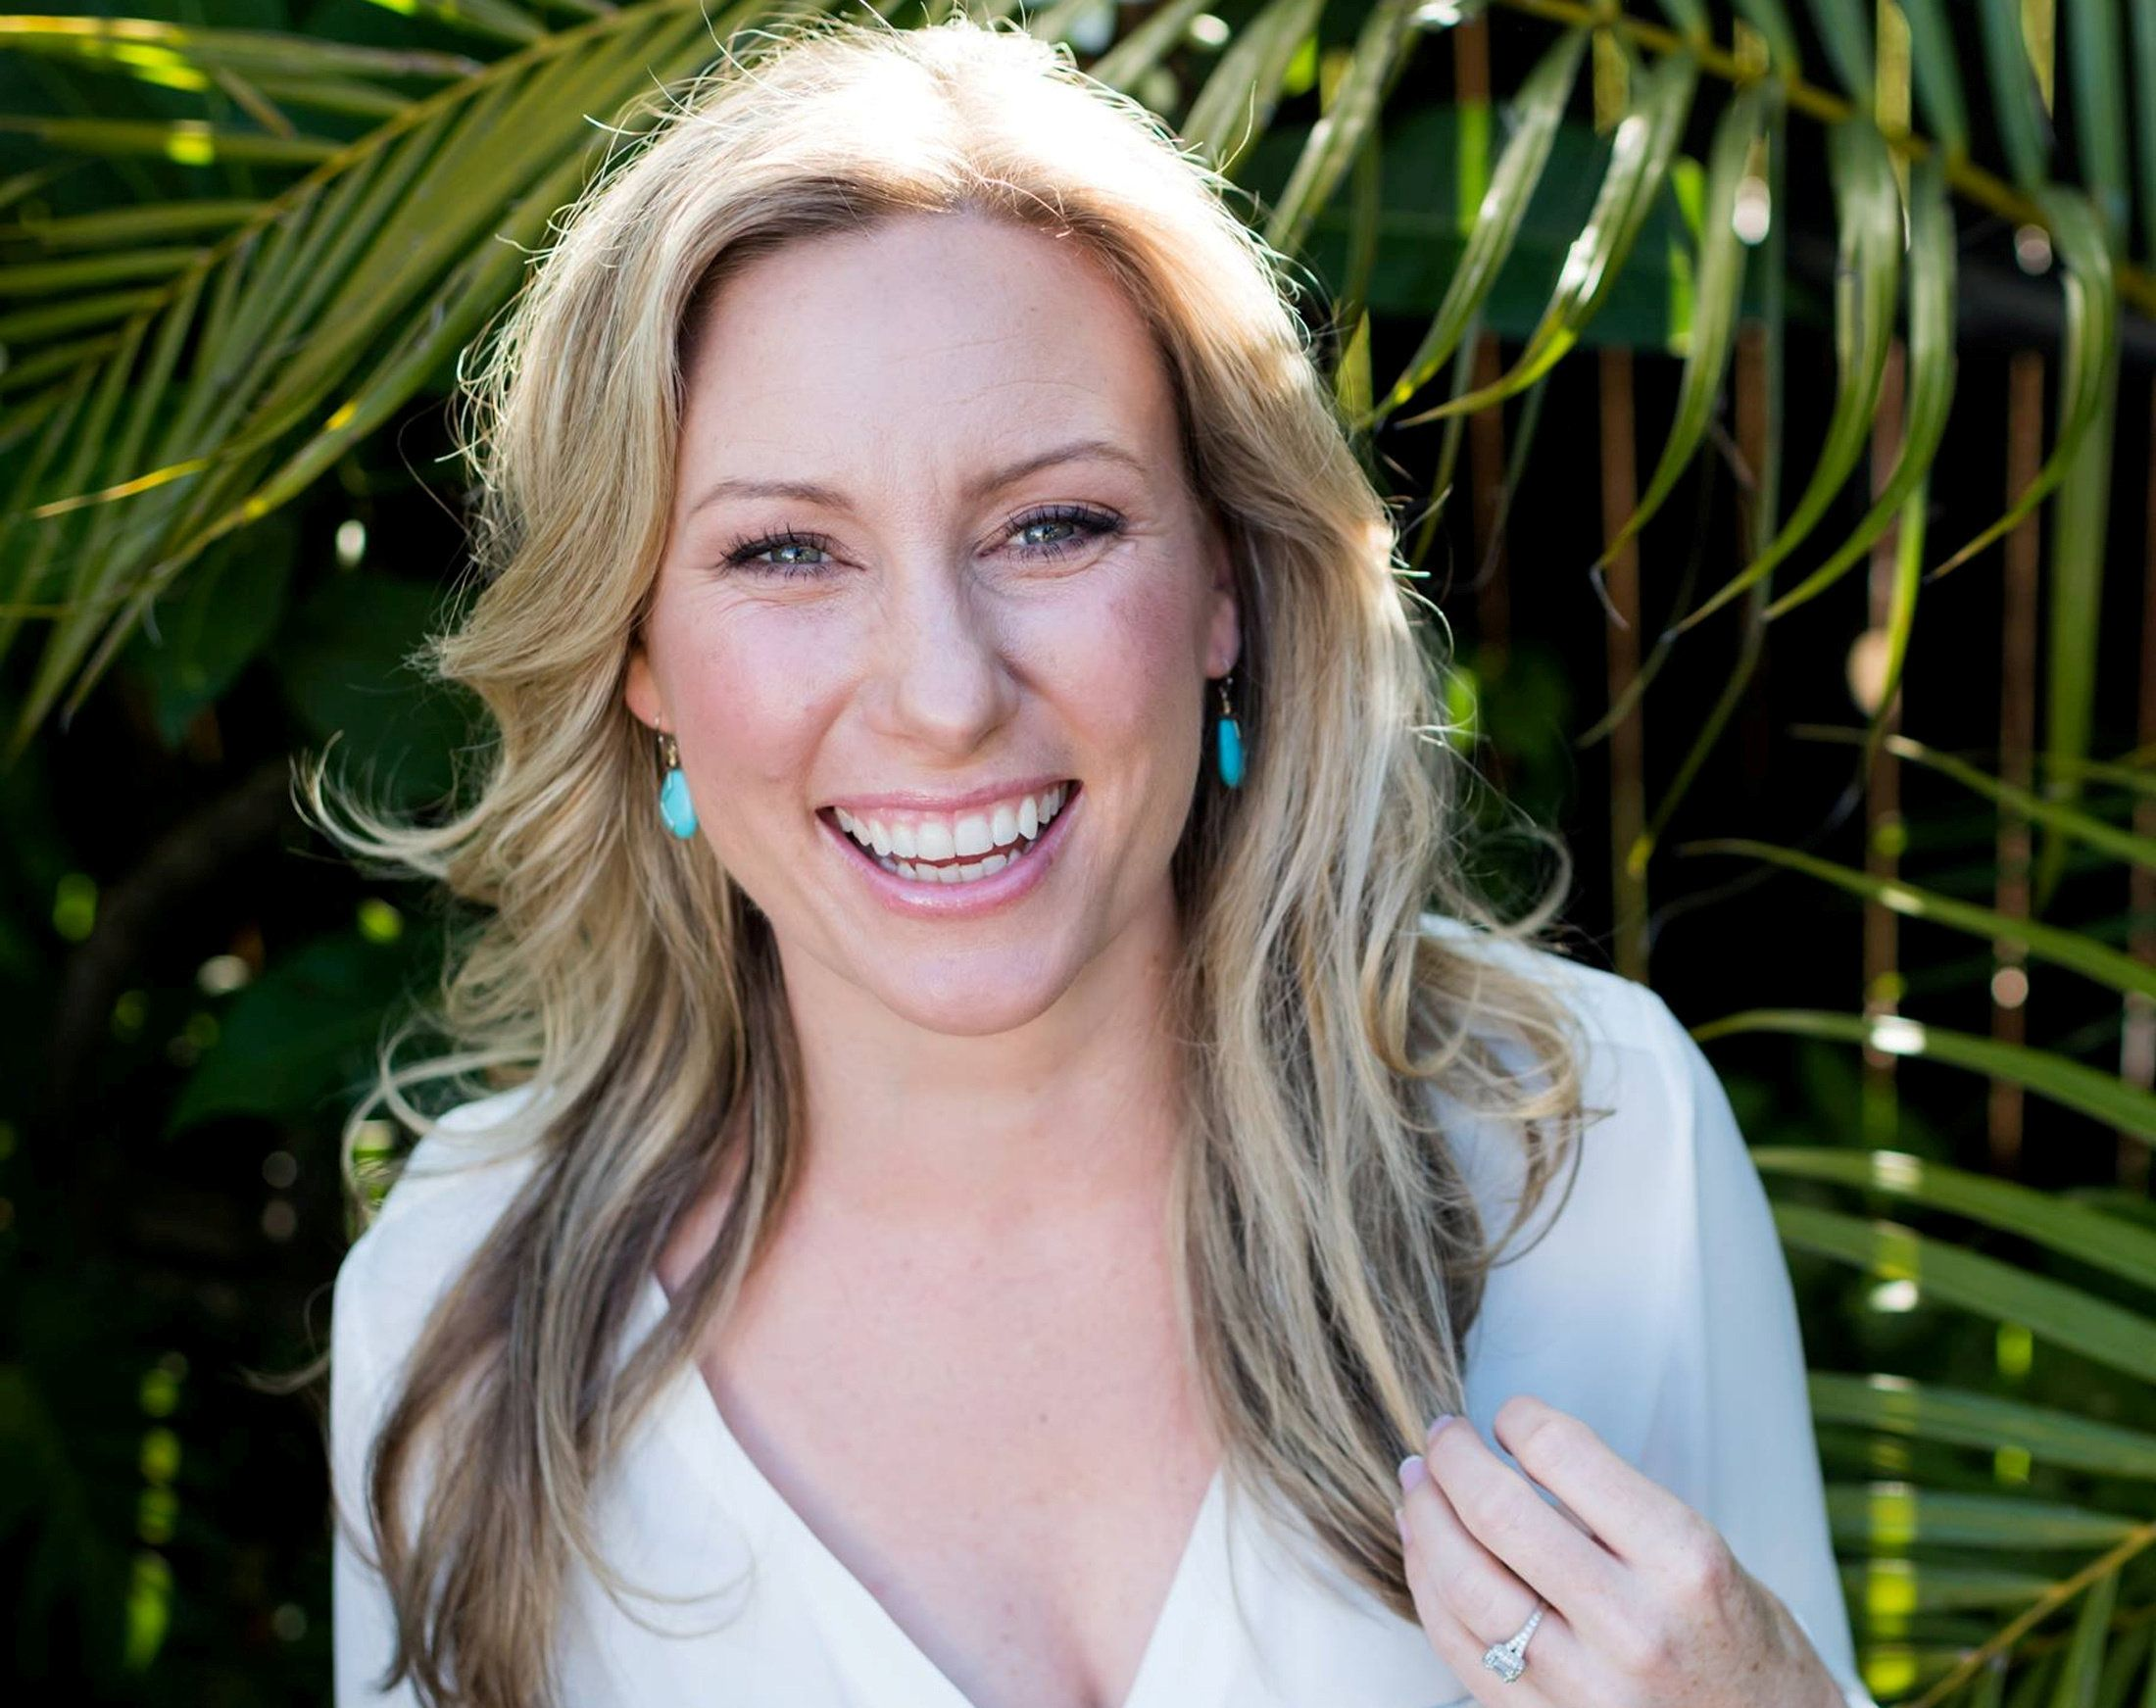 Justine Damond, also known as Justine Ruszczyk, from Sydney, was shot and killed by a Minneapolis police officer after callin